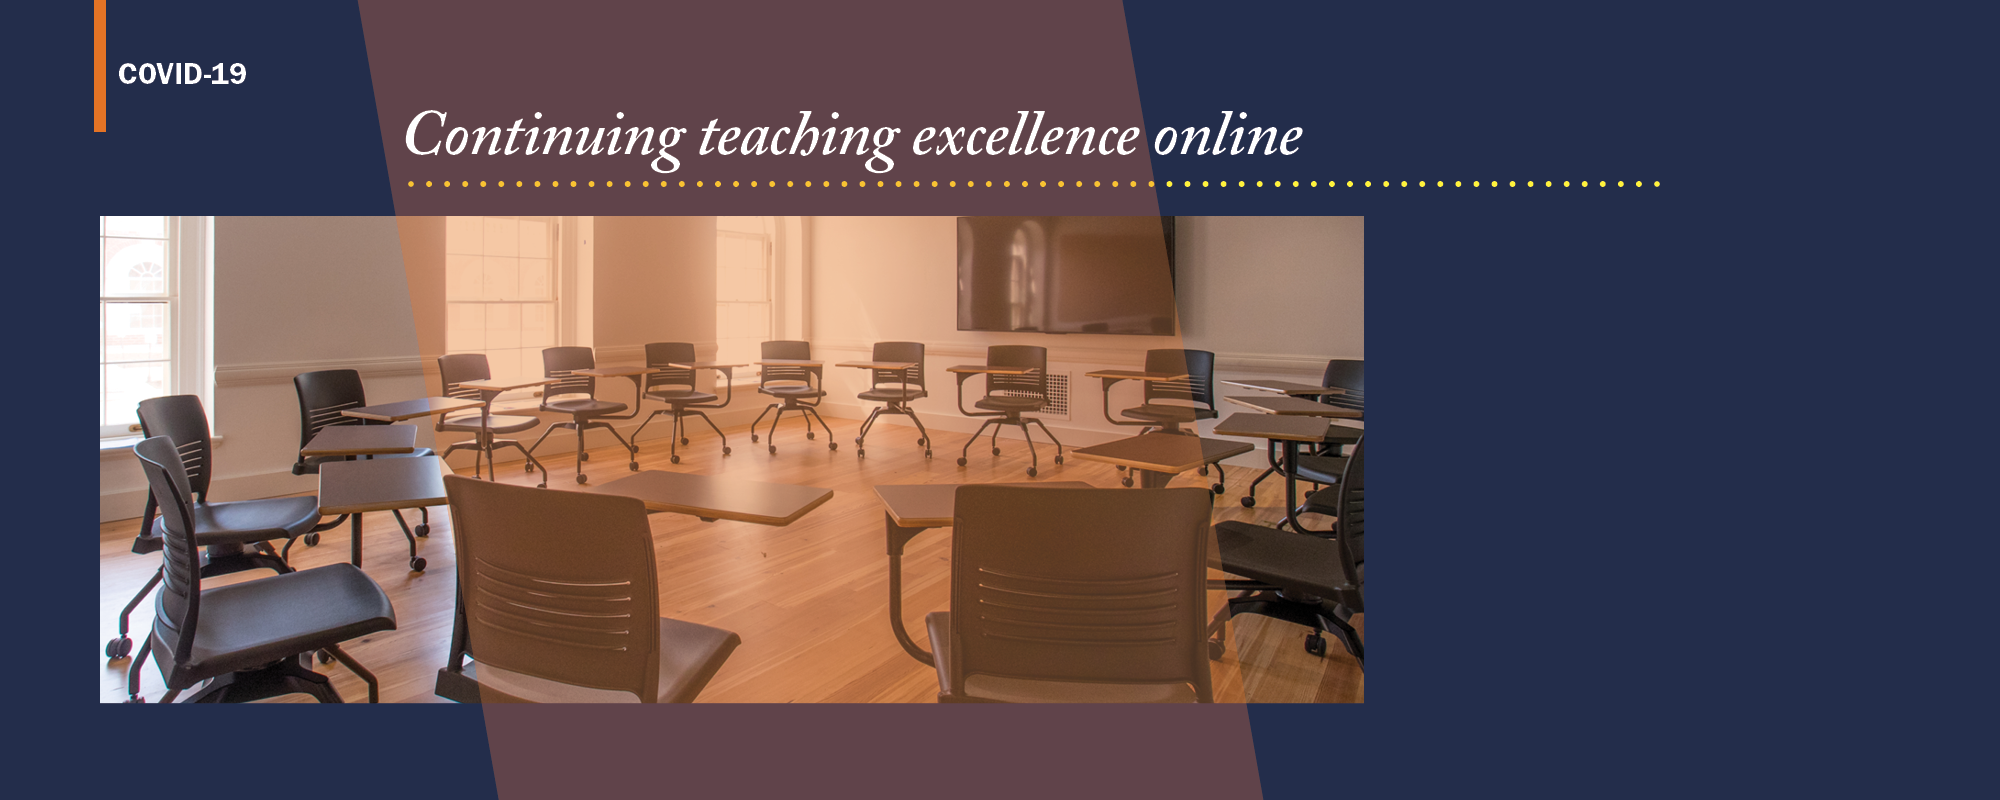 Continuing teaching excellence online